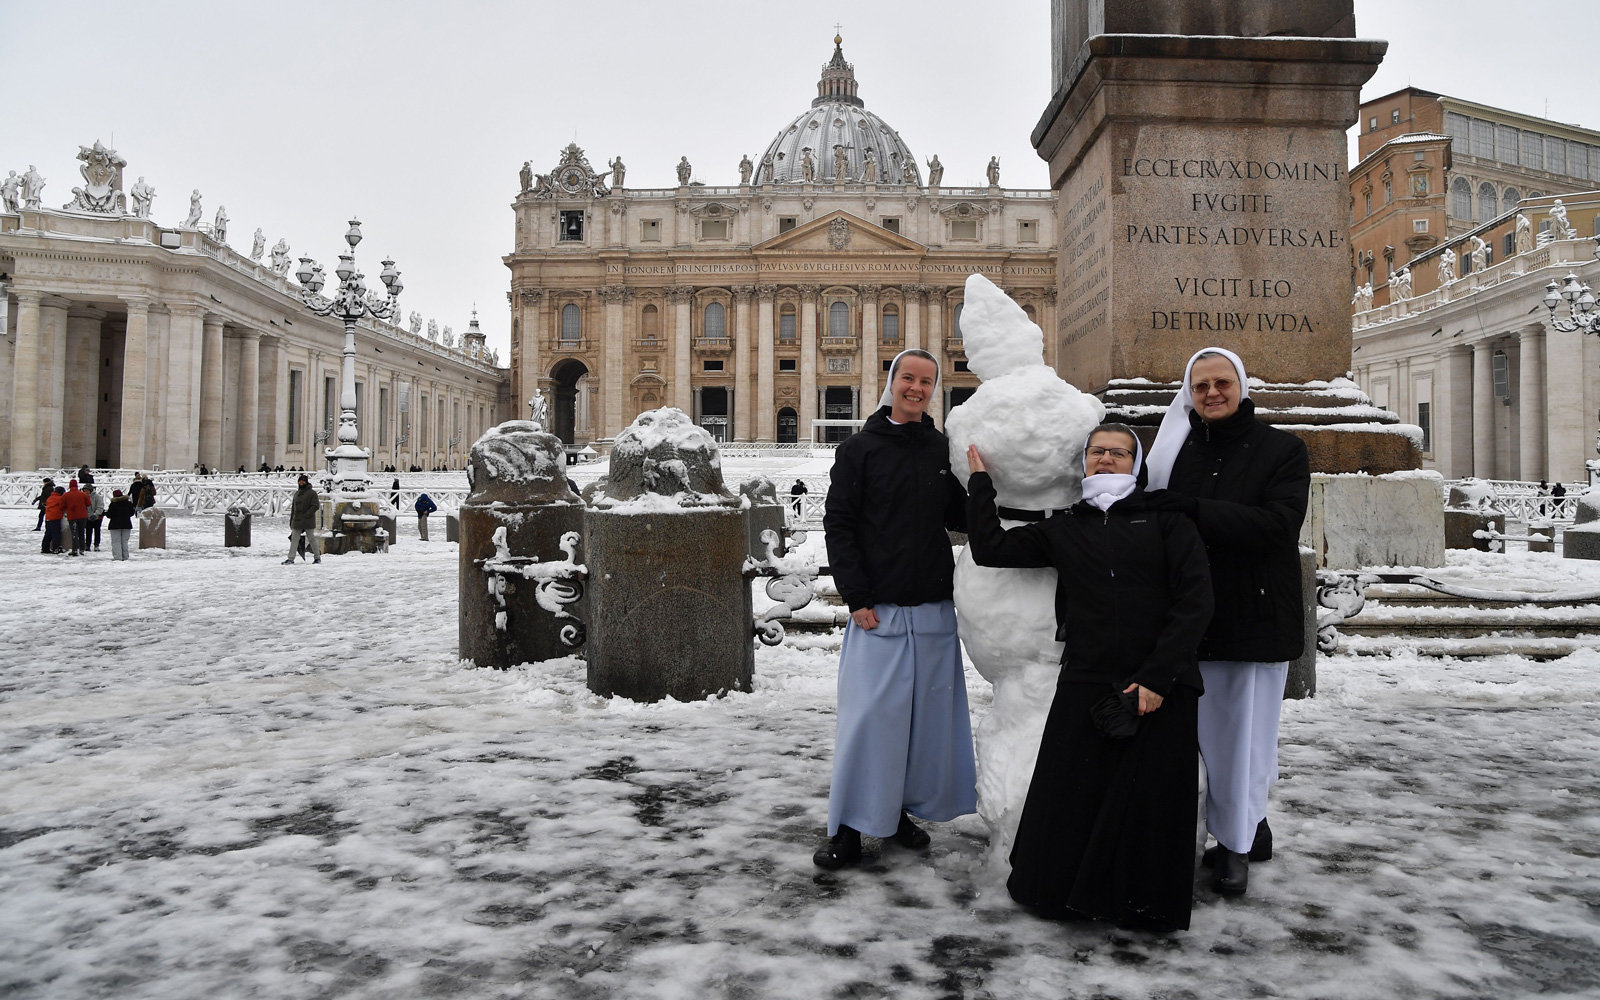 Priests Threw Snowballs And Nuns Built Snowmen During Rome